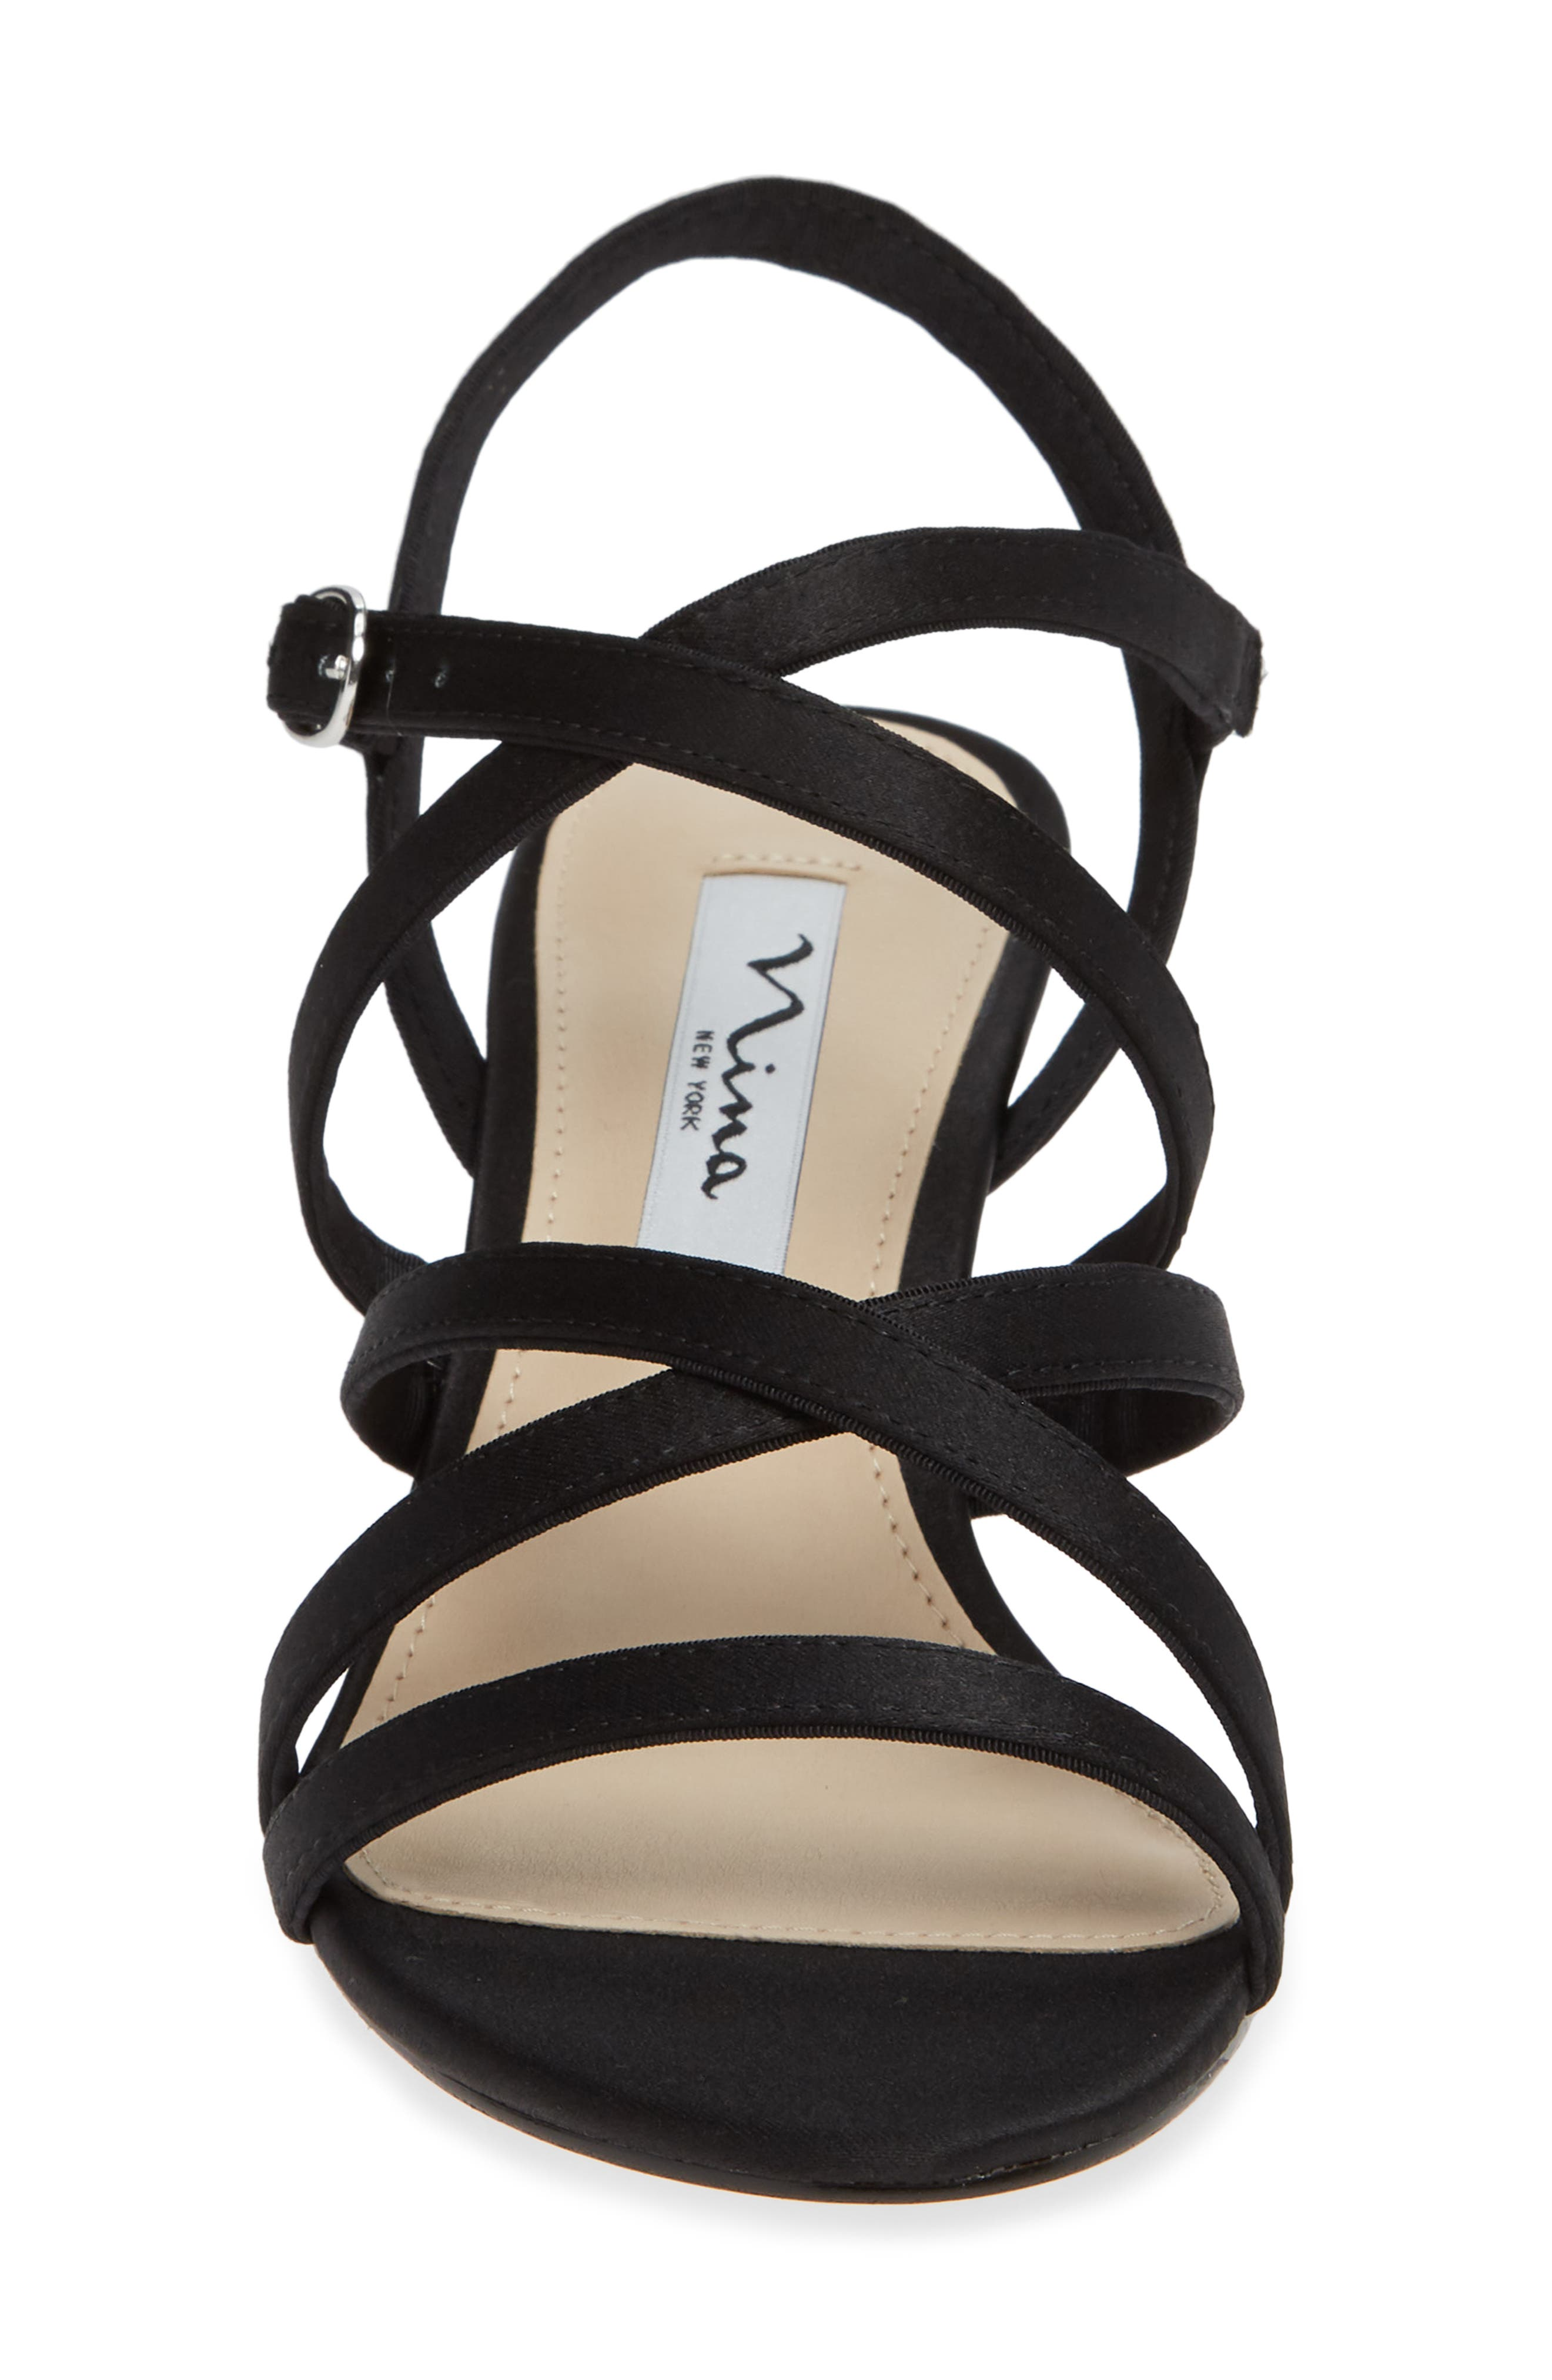 NINA, Genaya Strappy Evening Sandal, Alternate thumbnail 4, color, BLACK SATIN